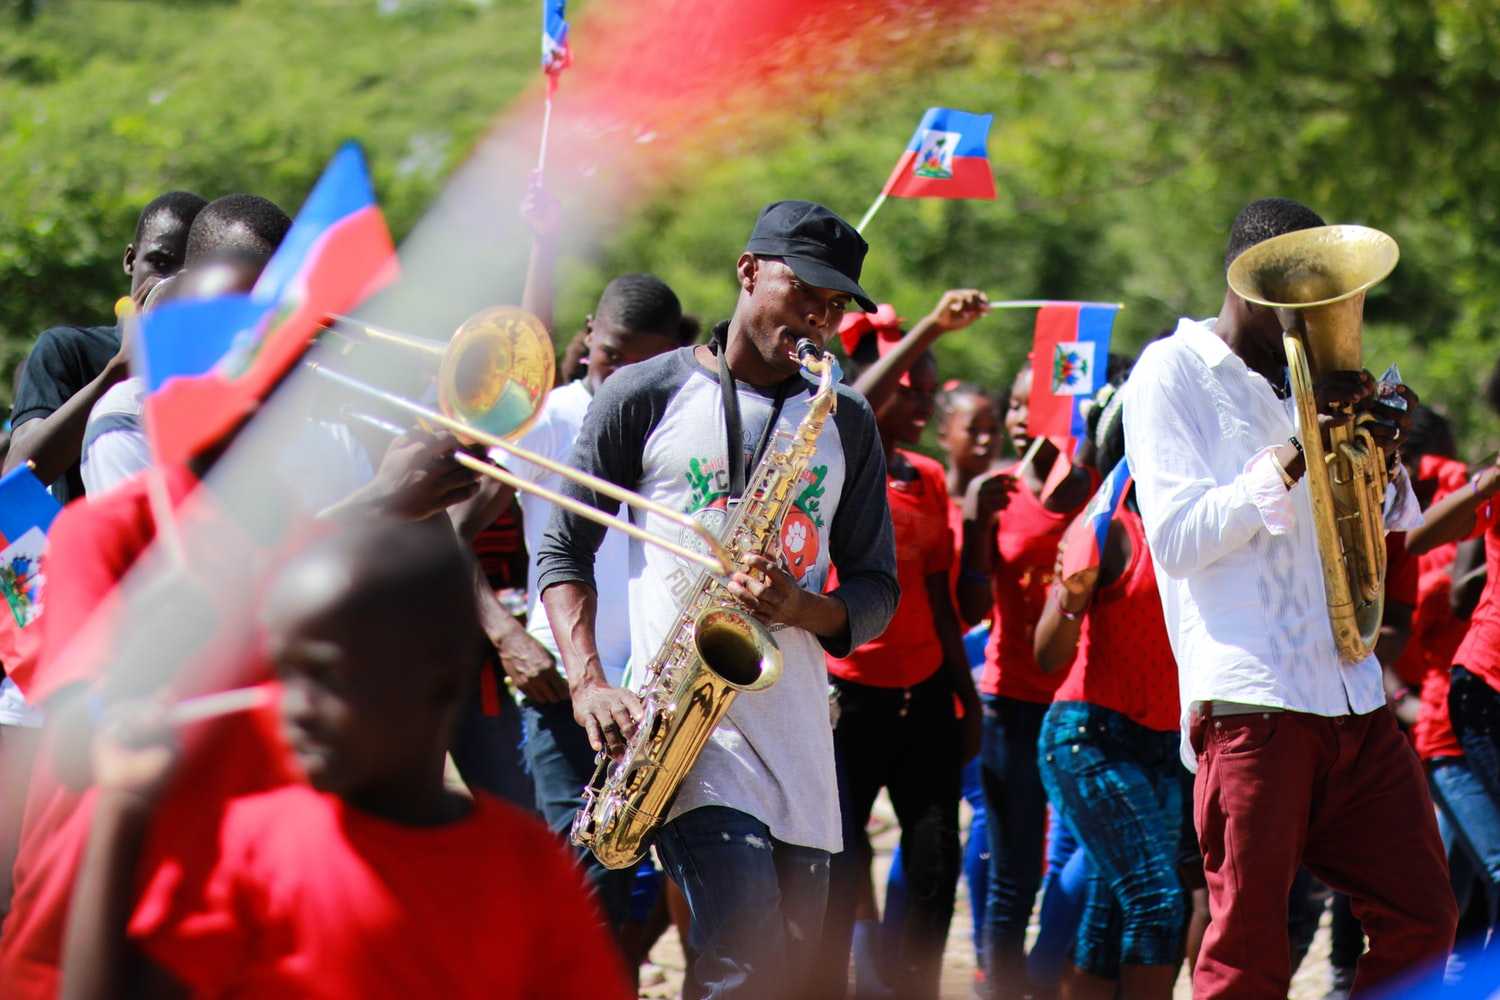 Haiti people are playing some instruments while others are waving their flags